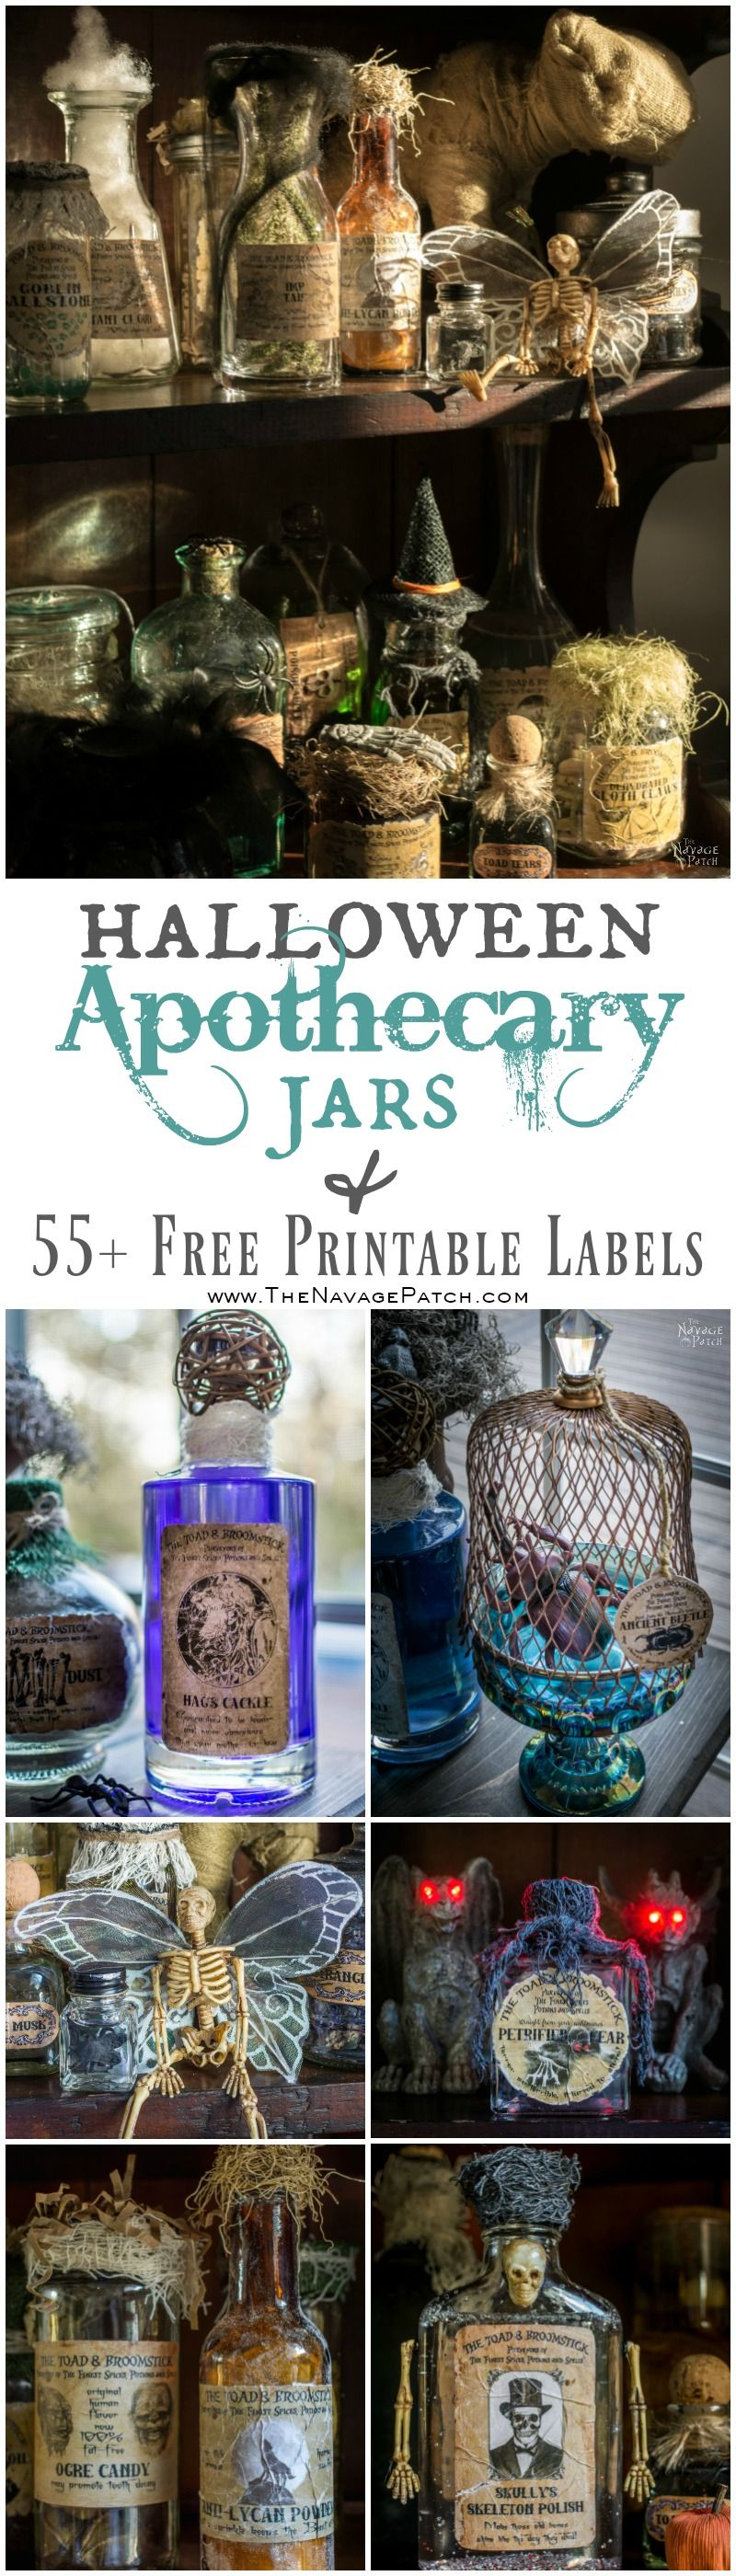 photo regarding Free Printable Halloween Bottle Labels named Halloween Apothecary Jars No cost Printable Labels - The